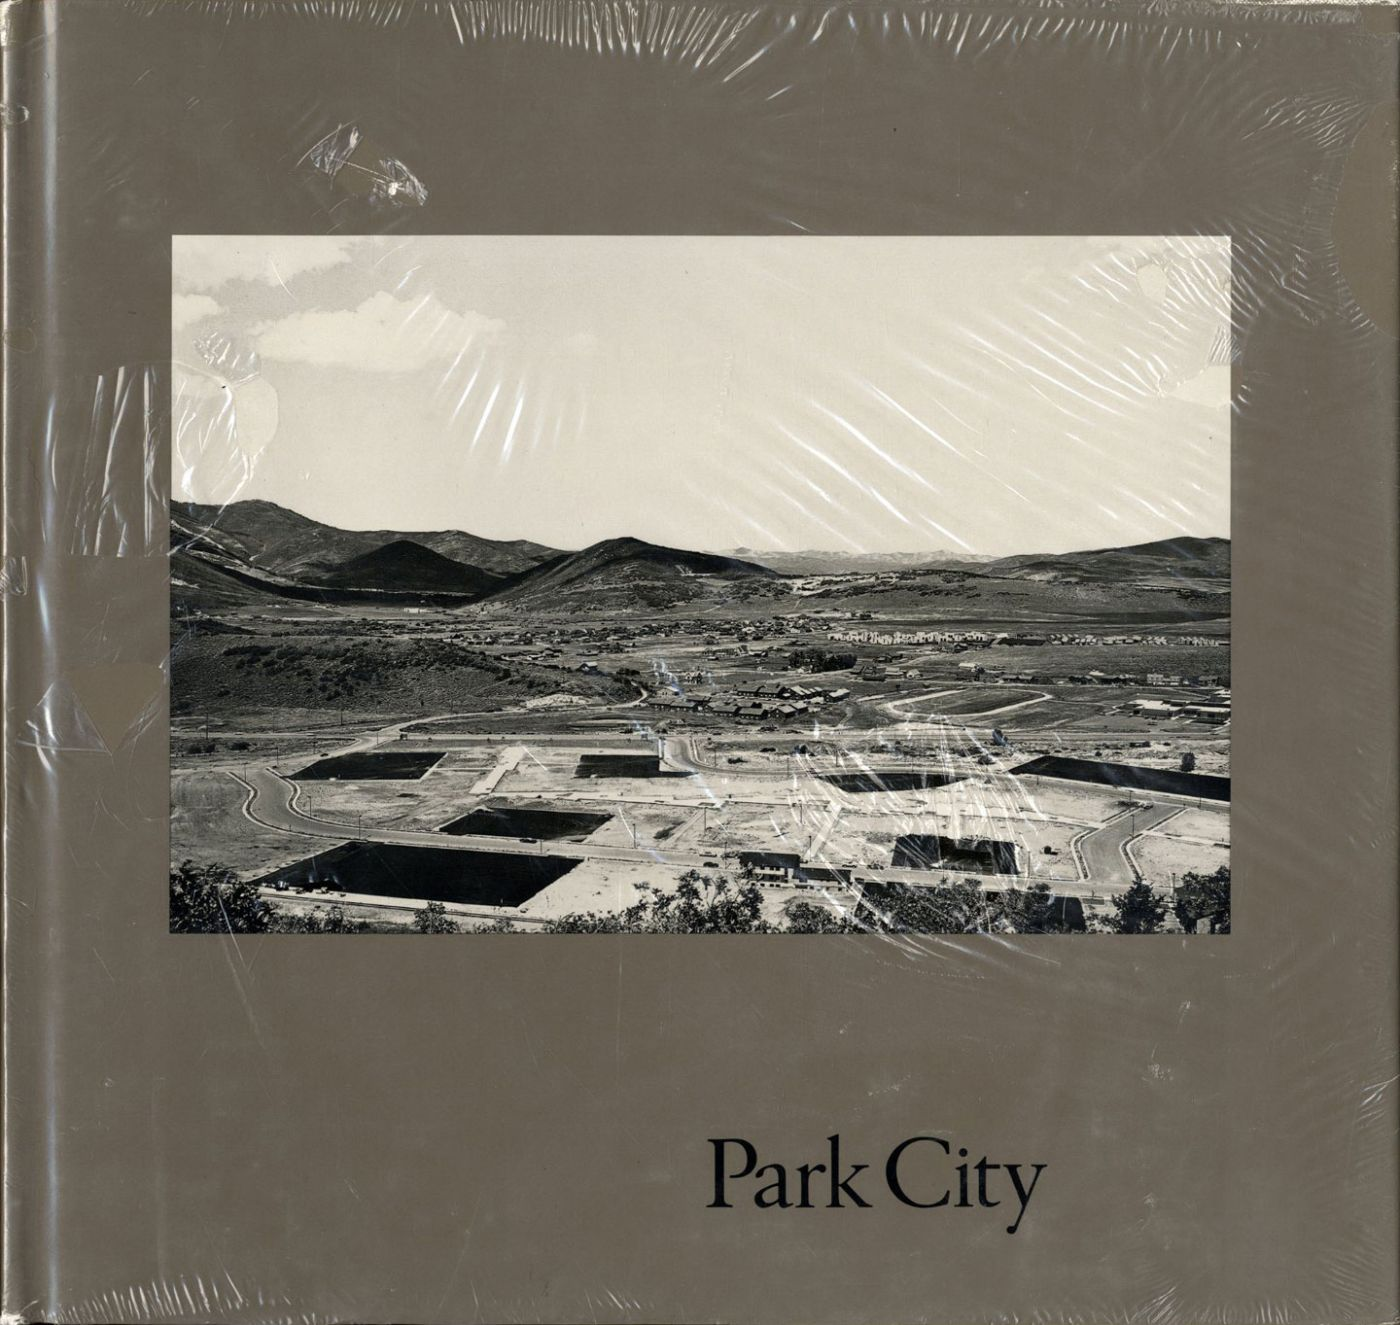 Lewis Baltz: Park City (First Edition, in publisher's shrink wrap) [IMPERFECT]